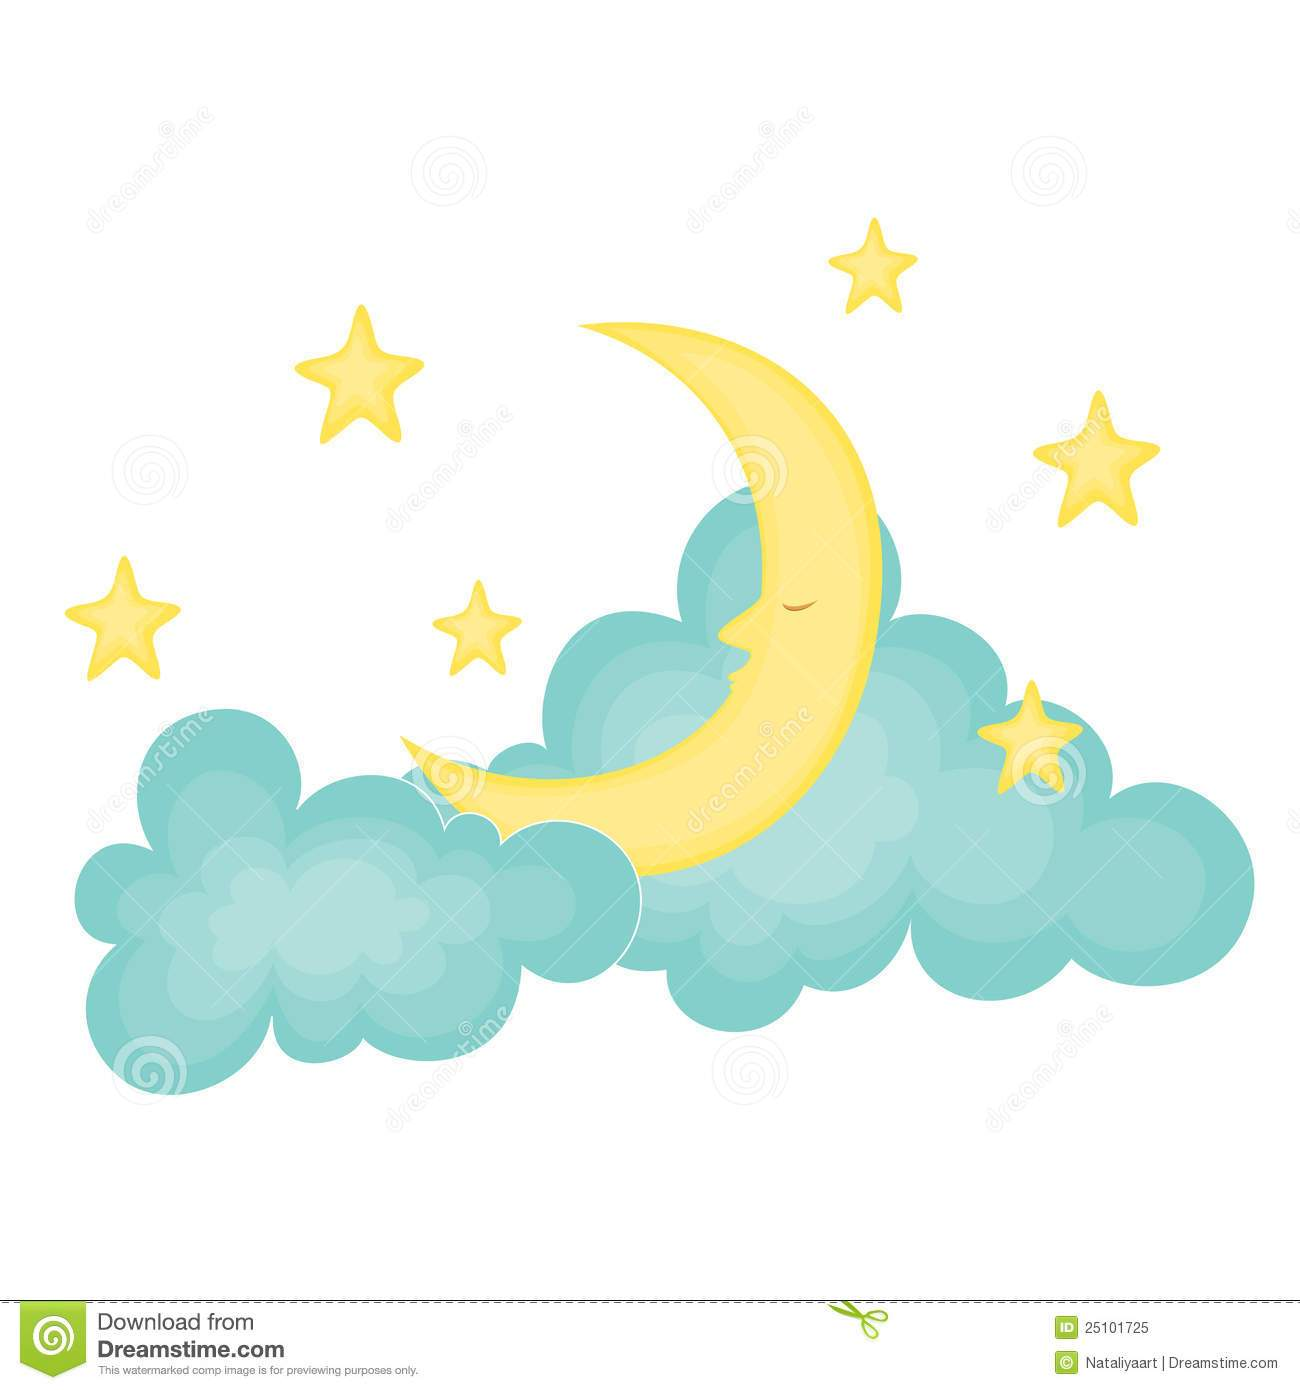 Cloud moon clipart banner free Moon and clouds clipart 1 » Clipart Portal banner free